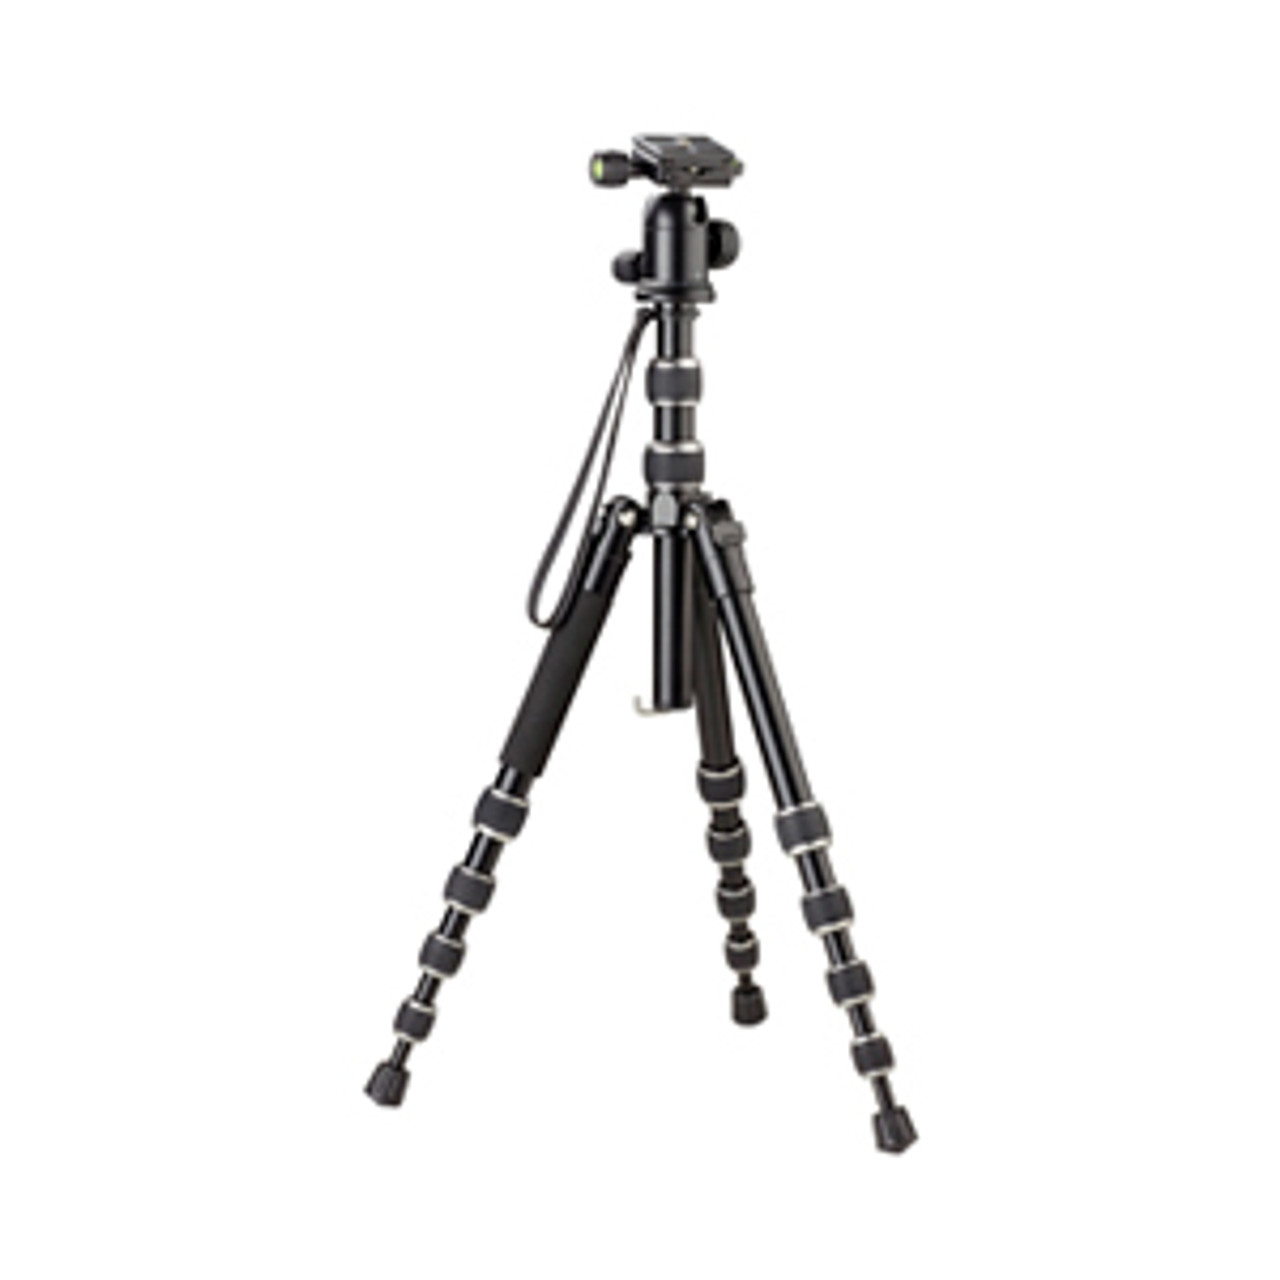 Optex T5I136 5-Section Travel Tripod